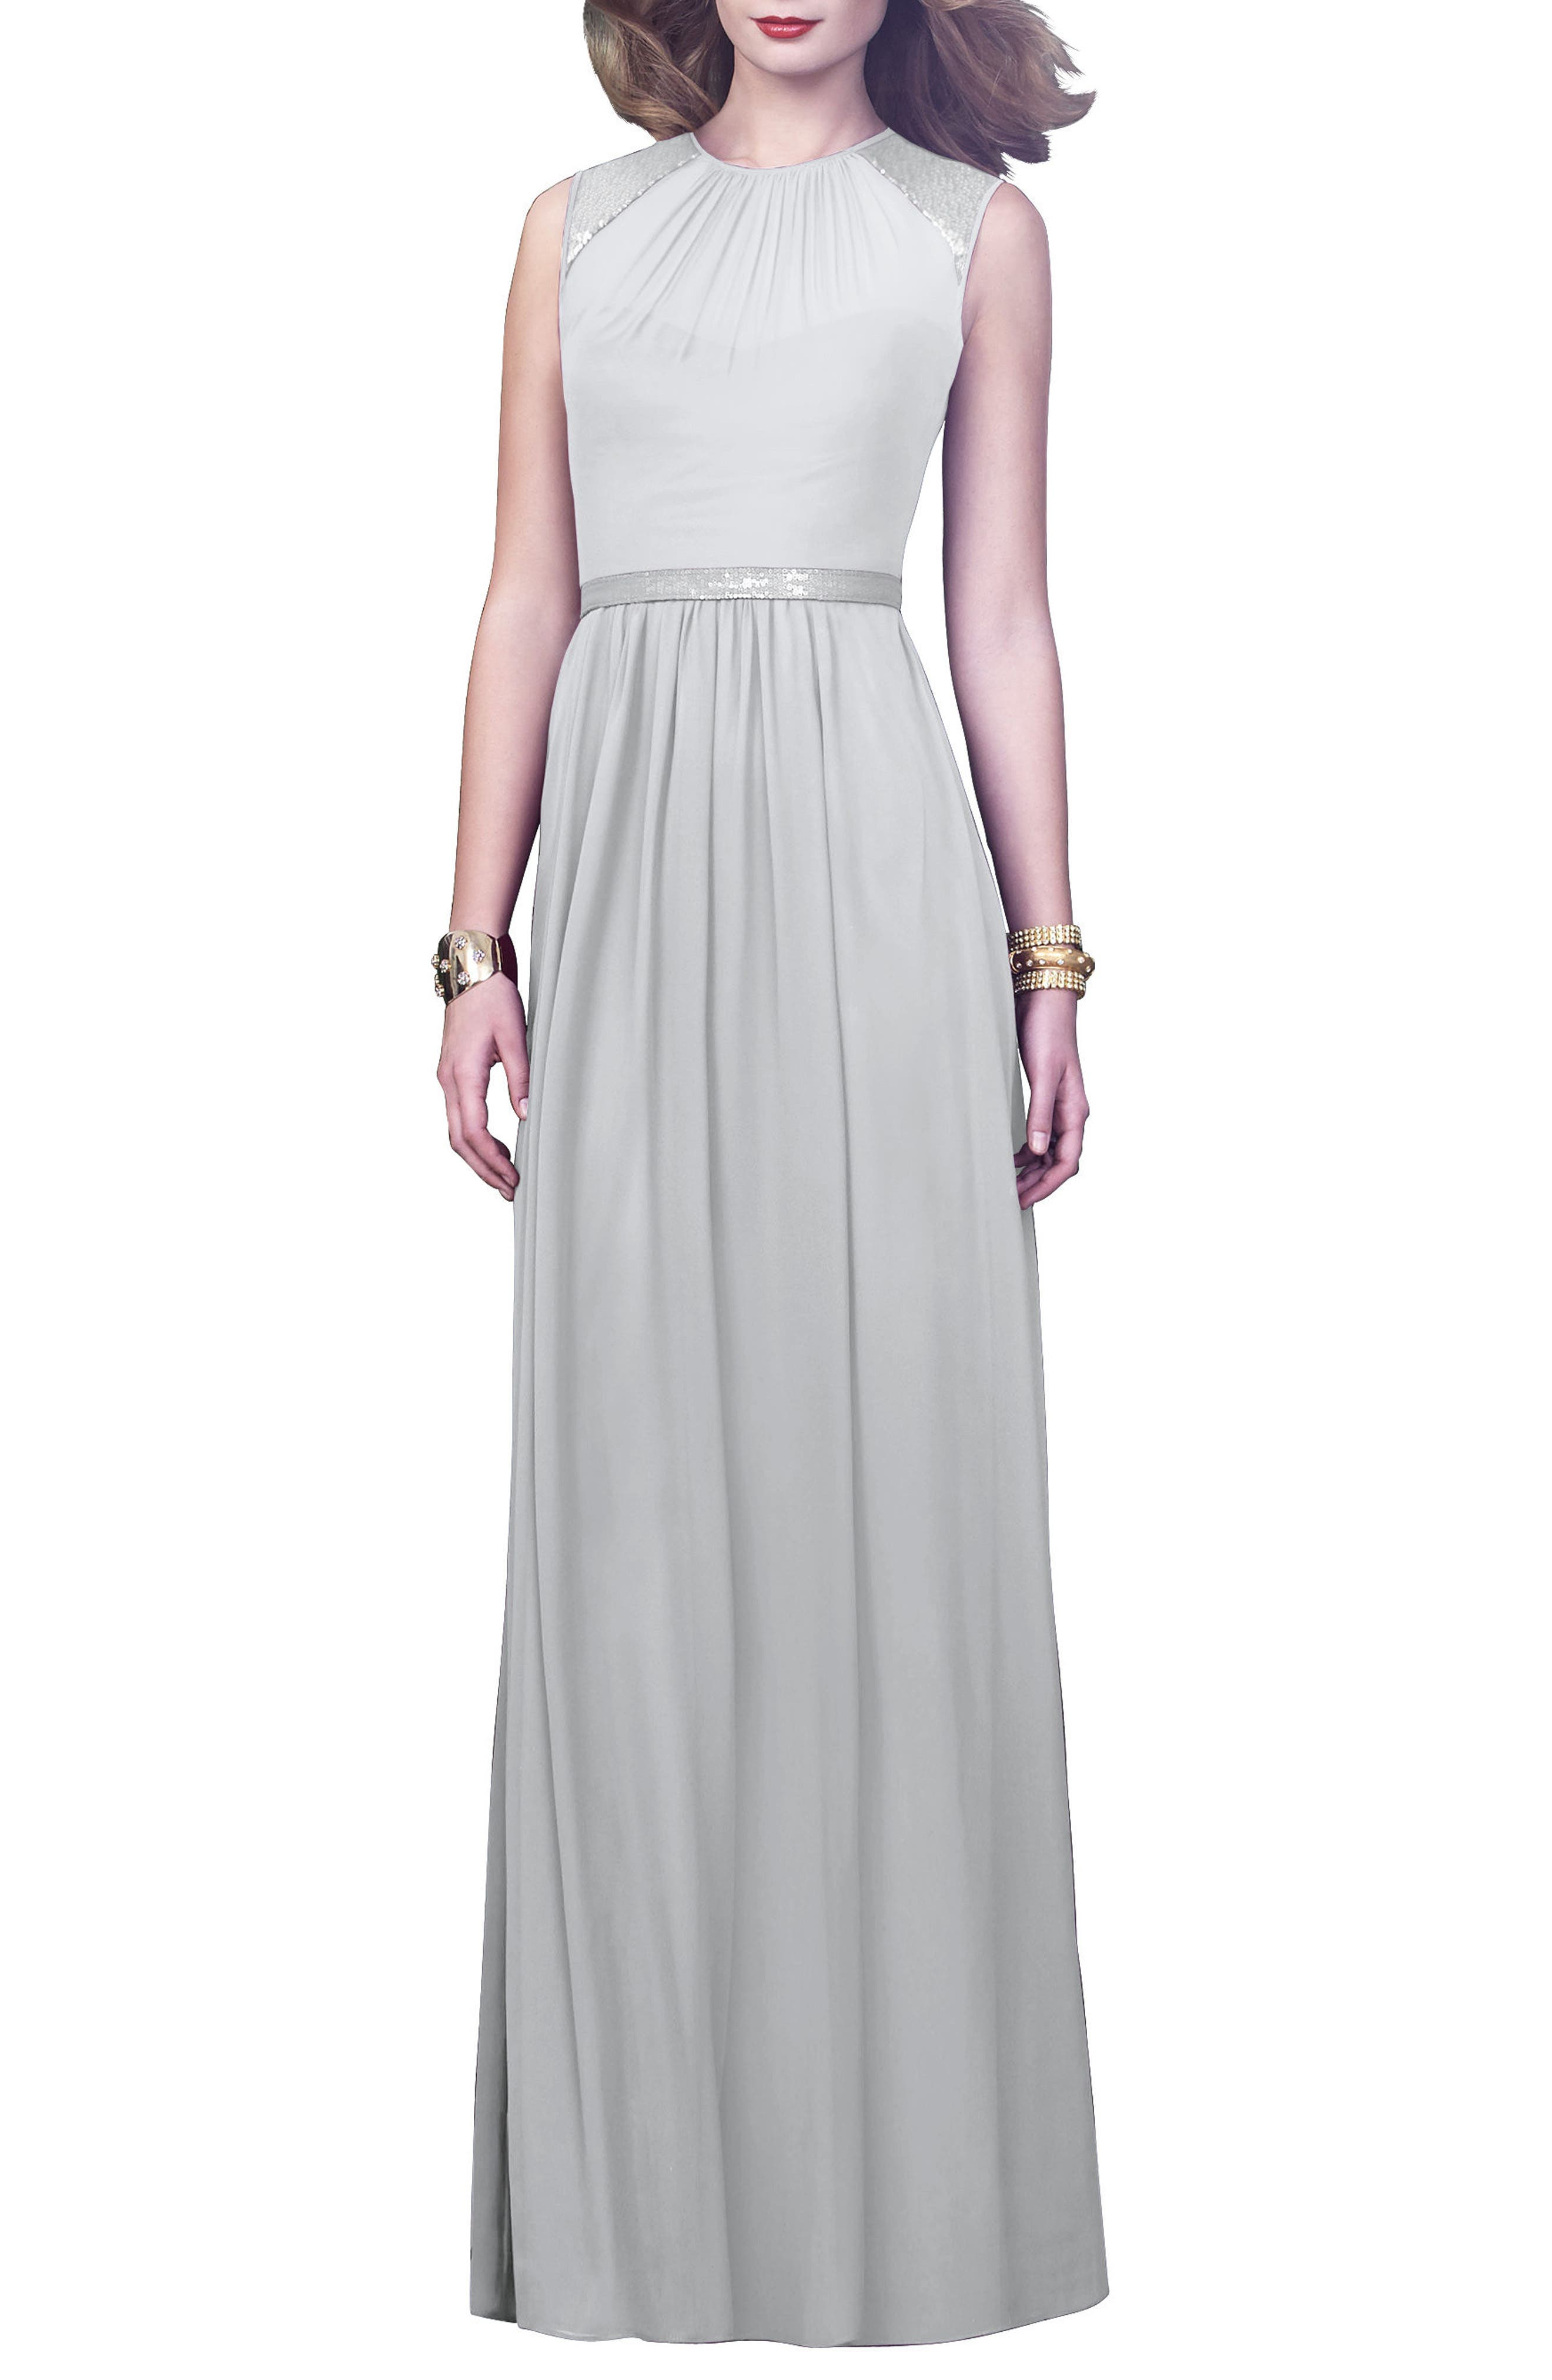 DESSY COLLECTION, Embellished Open Back Gown, Main thumbnail 1, color, FROST